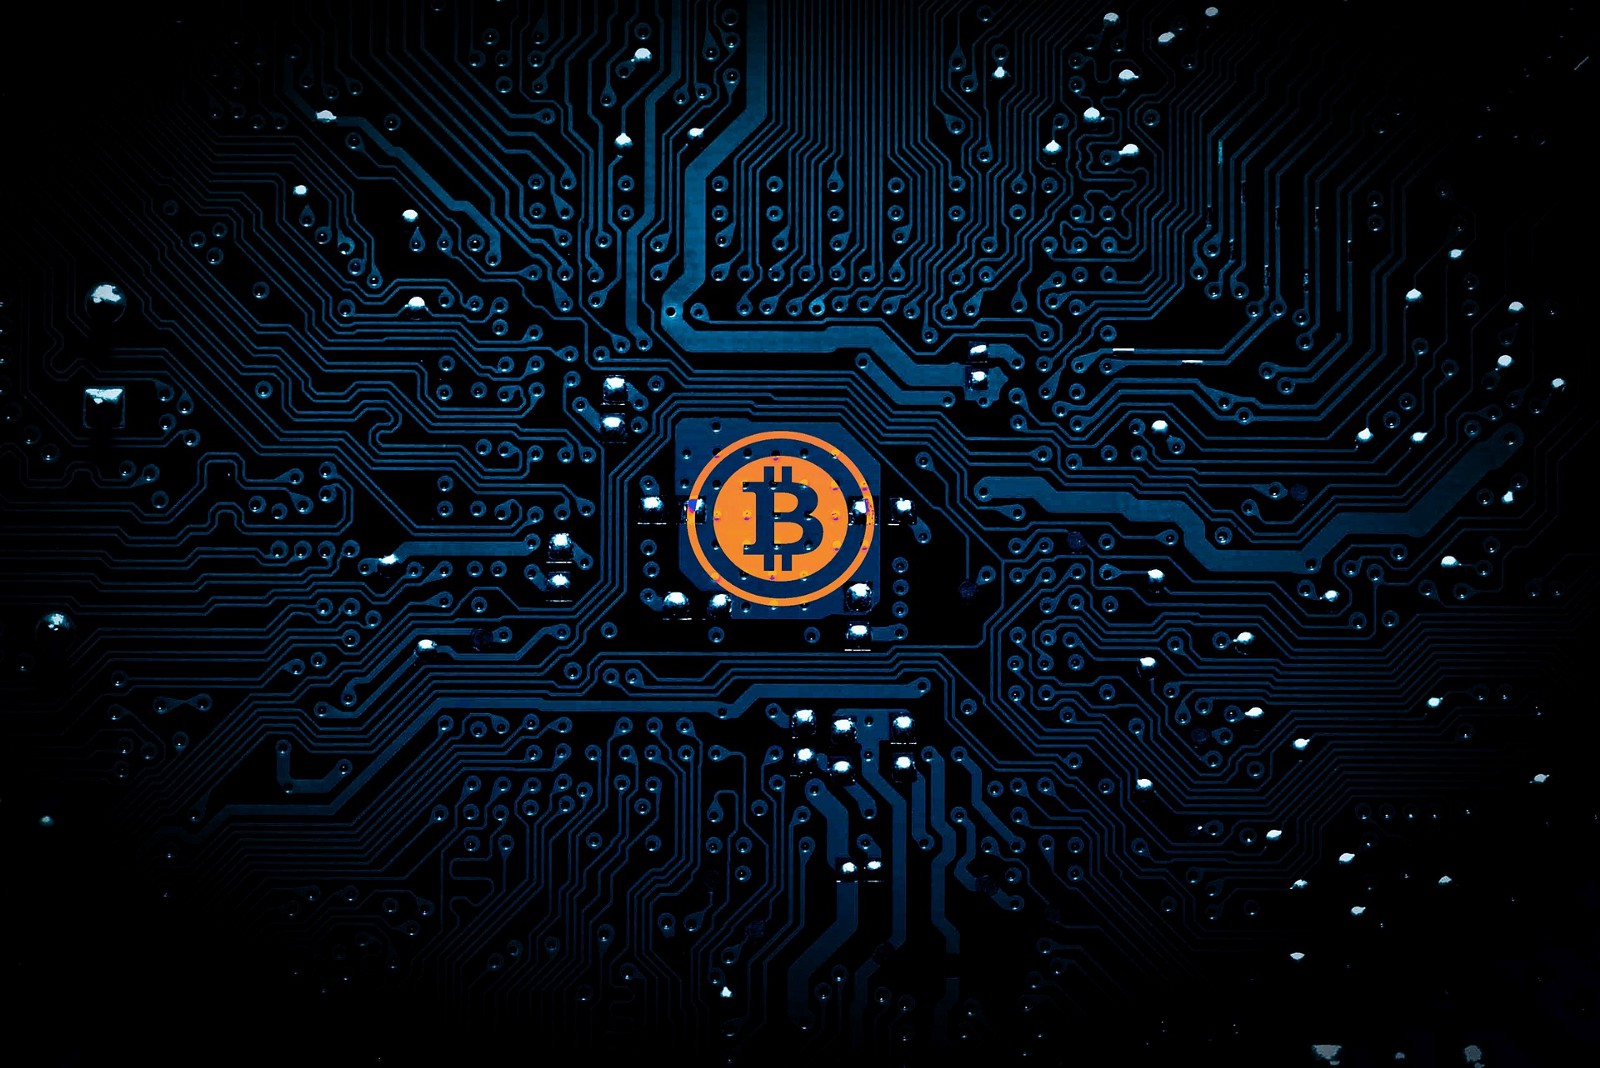 /beginners-guide-to-investing-in-cryptocurrencies-e2636d9c2fd9 feature image